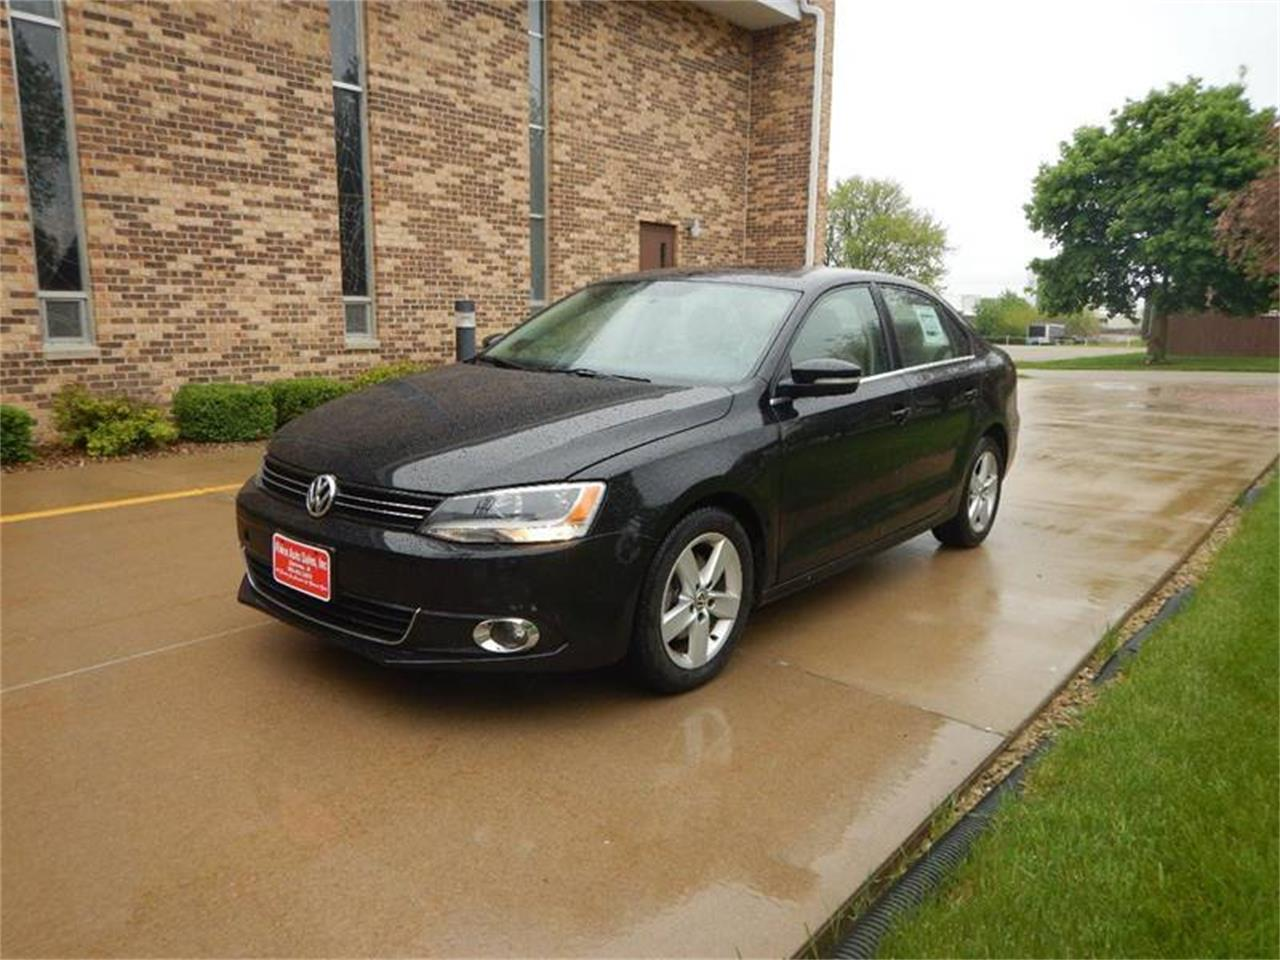 Large Picture of '12 Volkswagen Jetta - $8,995.00 - Q48I